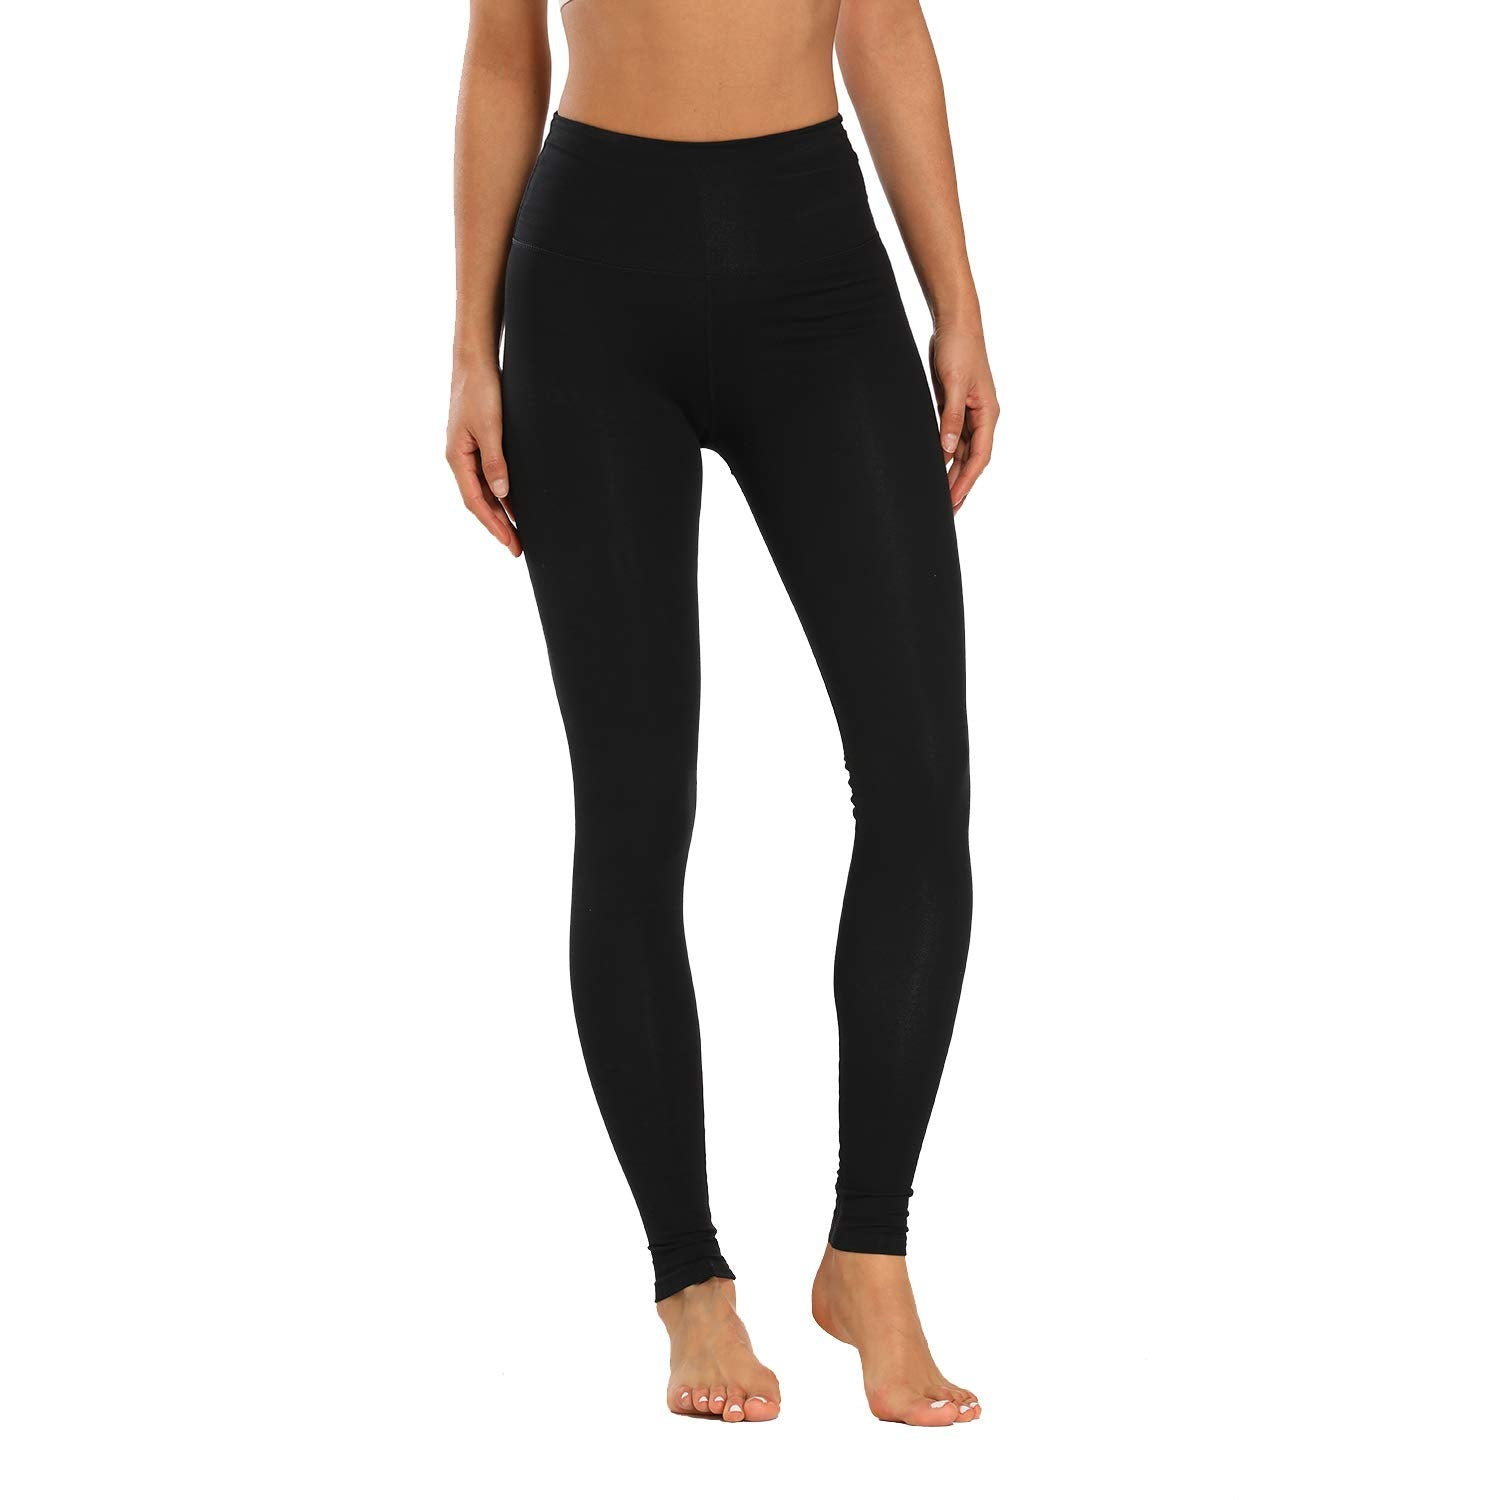 Houmous Women's High Waist Full-Length Yoga Pants Workout Pants  Leggings